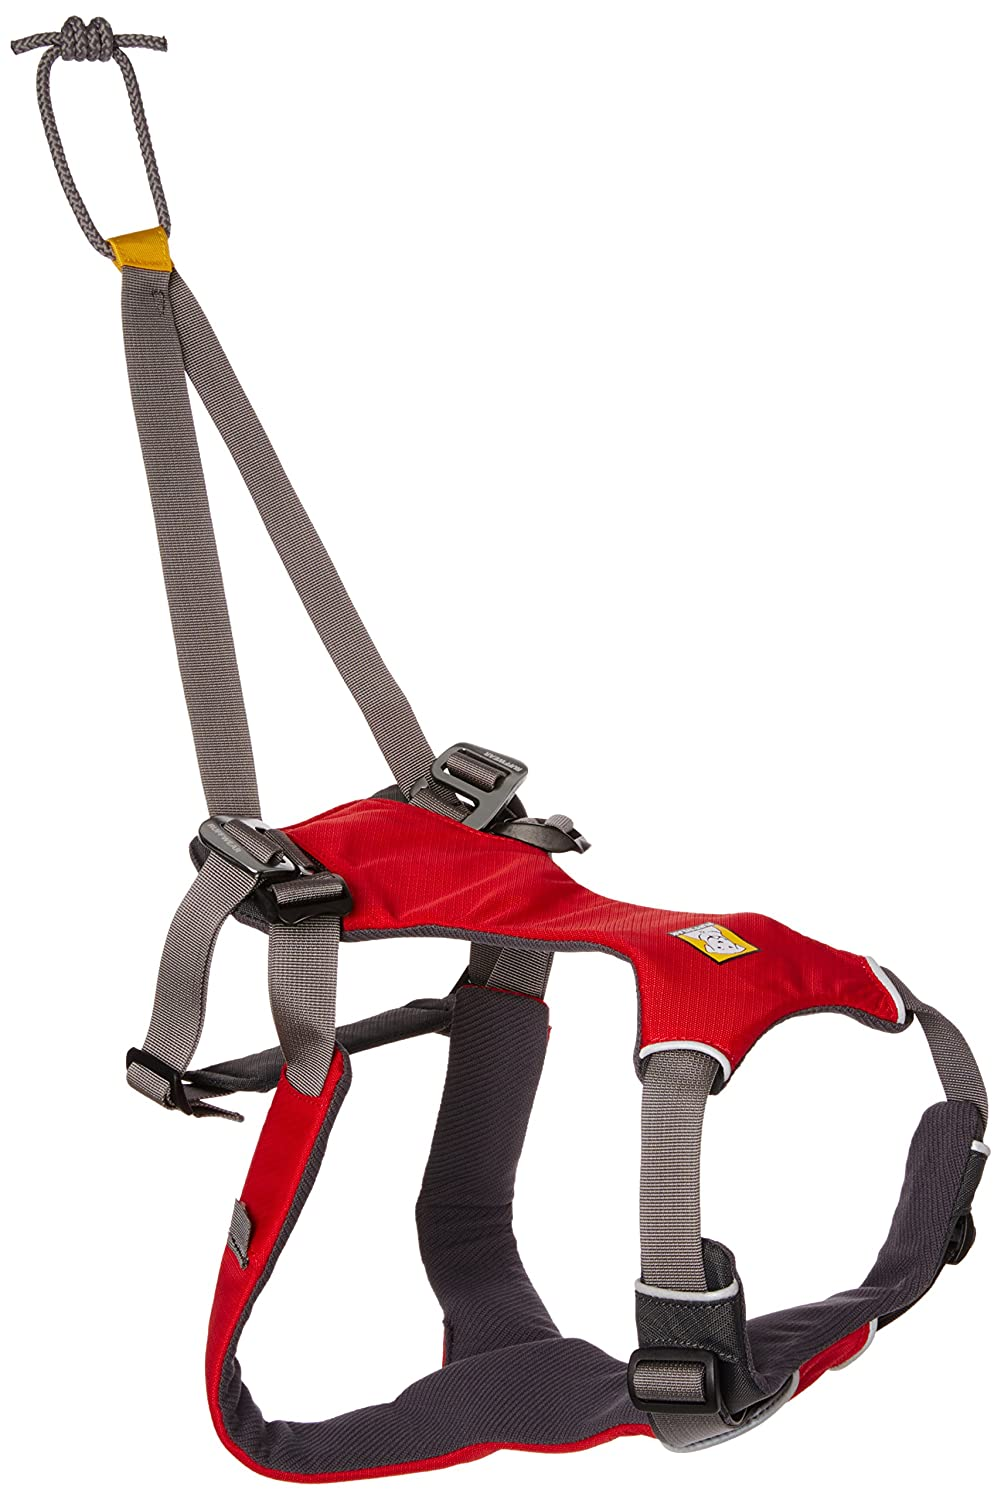 Harnesses Dog Omnijor Wire Center Crane Hoist Brake Wiring Diagram Patent Us3971971 Overhead Amazon Com Ruffwear Omnijore Joring Harness Red Currant Rh For Dachshunds Dogs That Pull